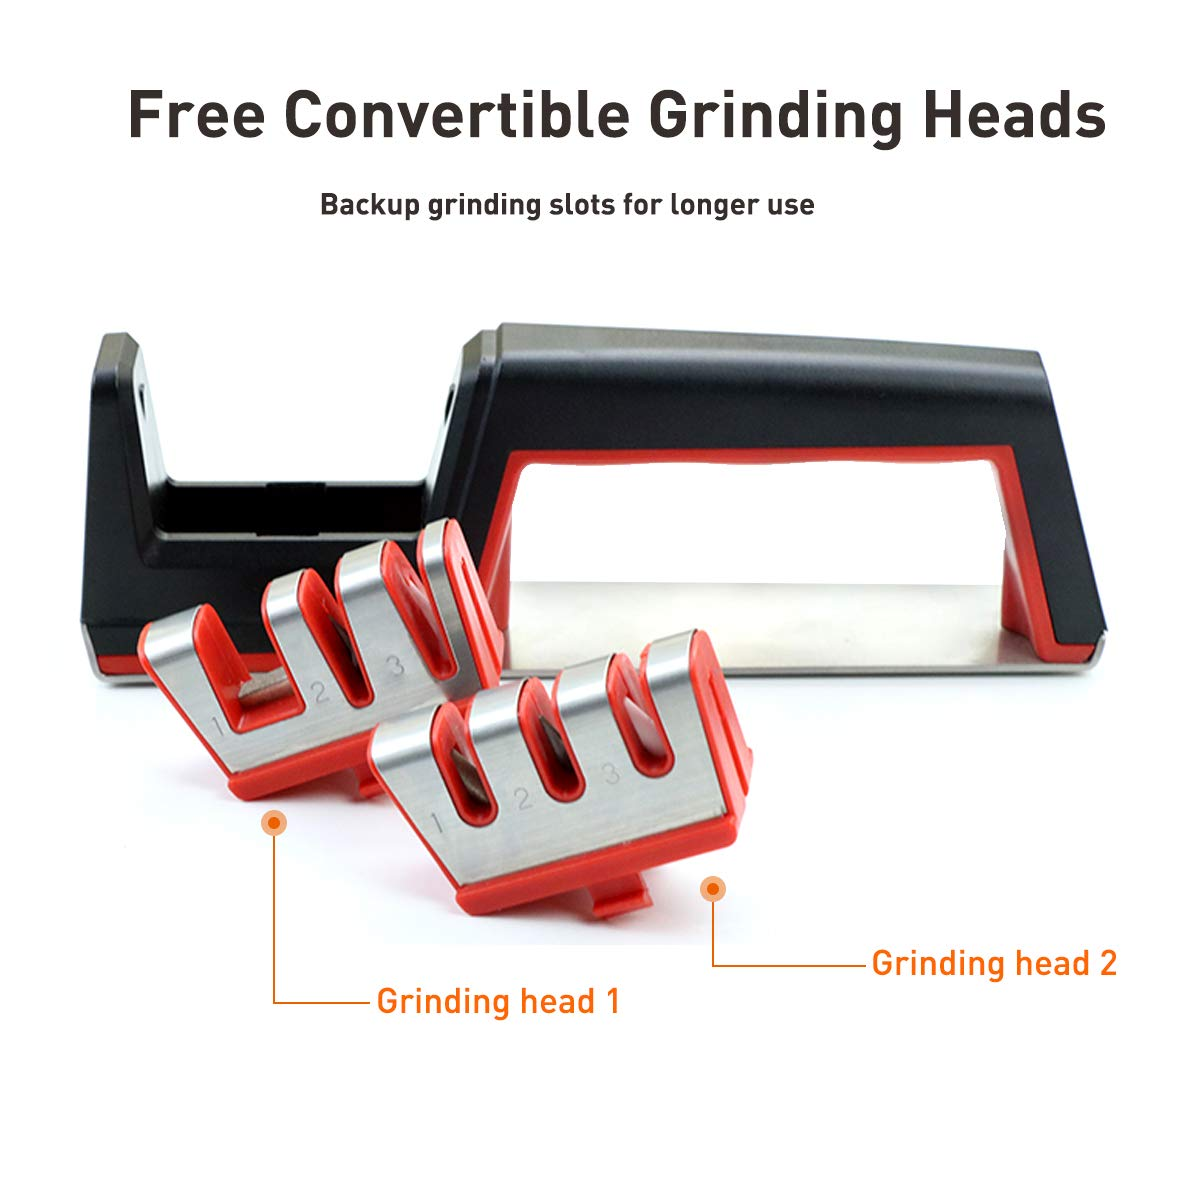 Kitchen Knife Sharpener - 3-Stage Knife Sharpening Tool, Fast Restore and Polish Blades - Backup Grinding Slot included